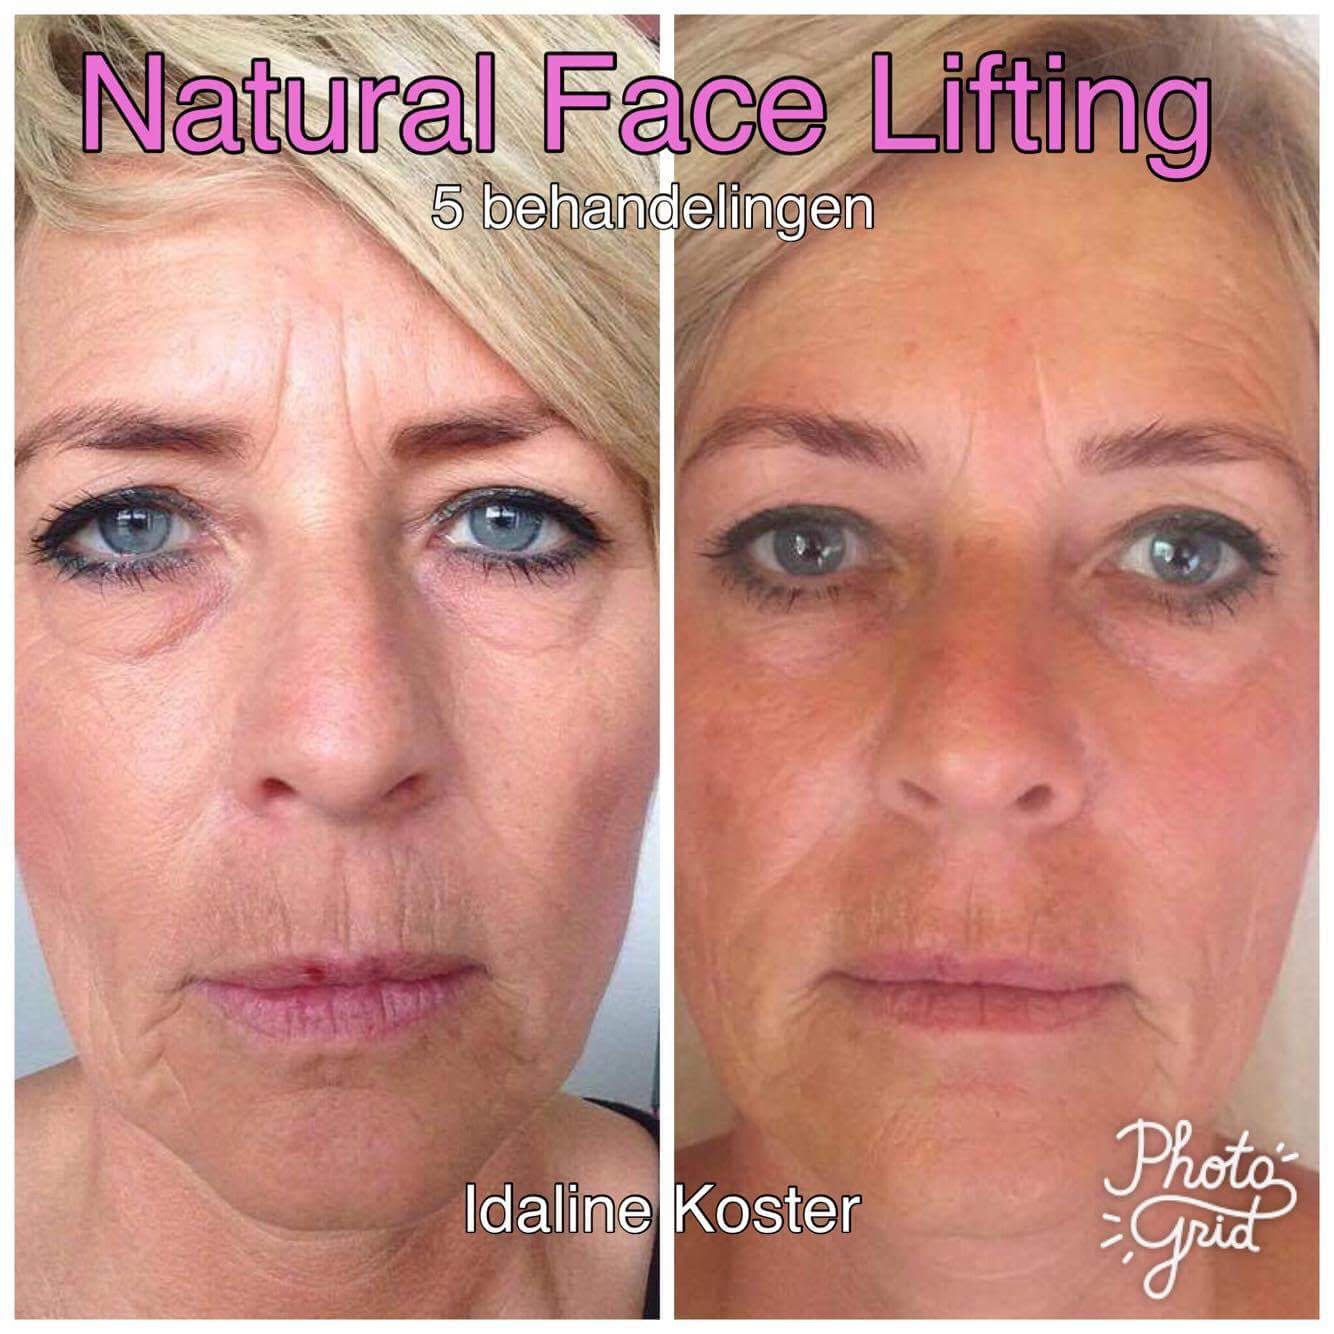 Resultaat Natural Face Lifting door Idaline Koster